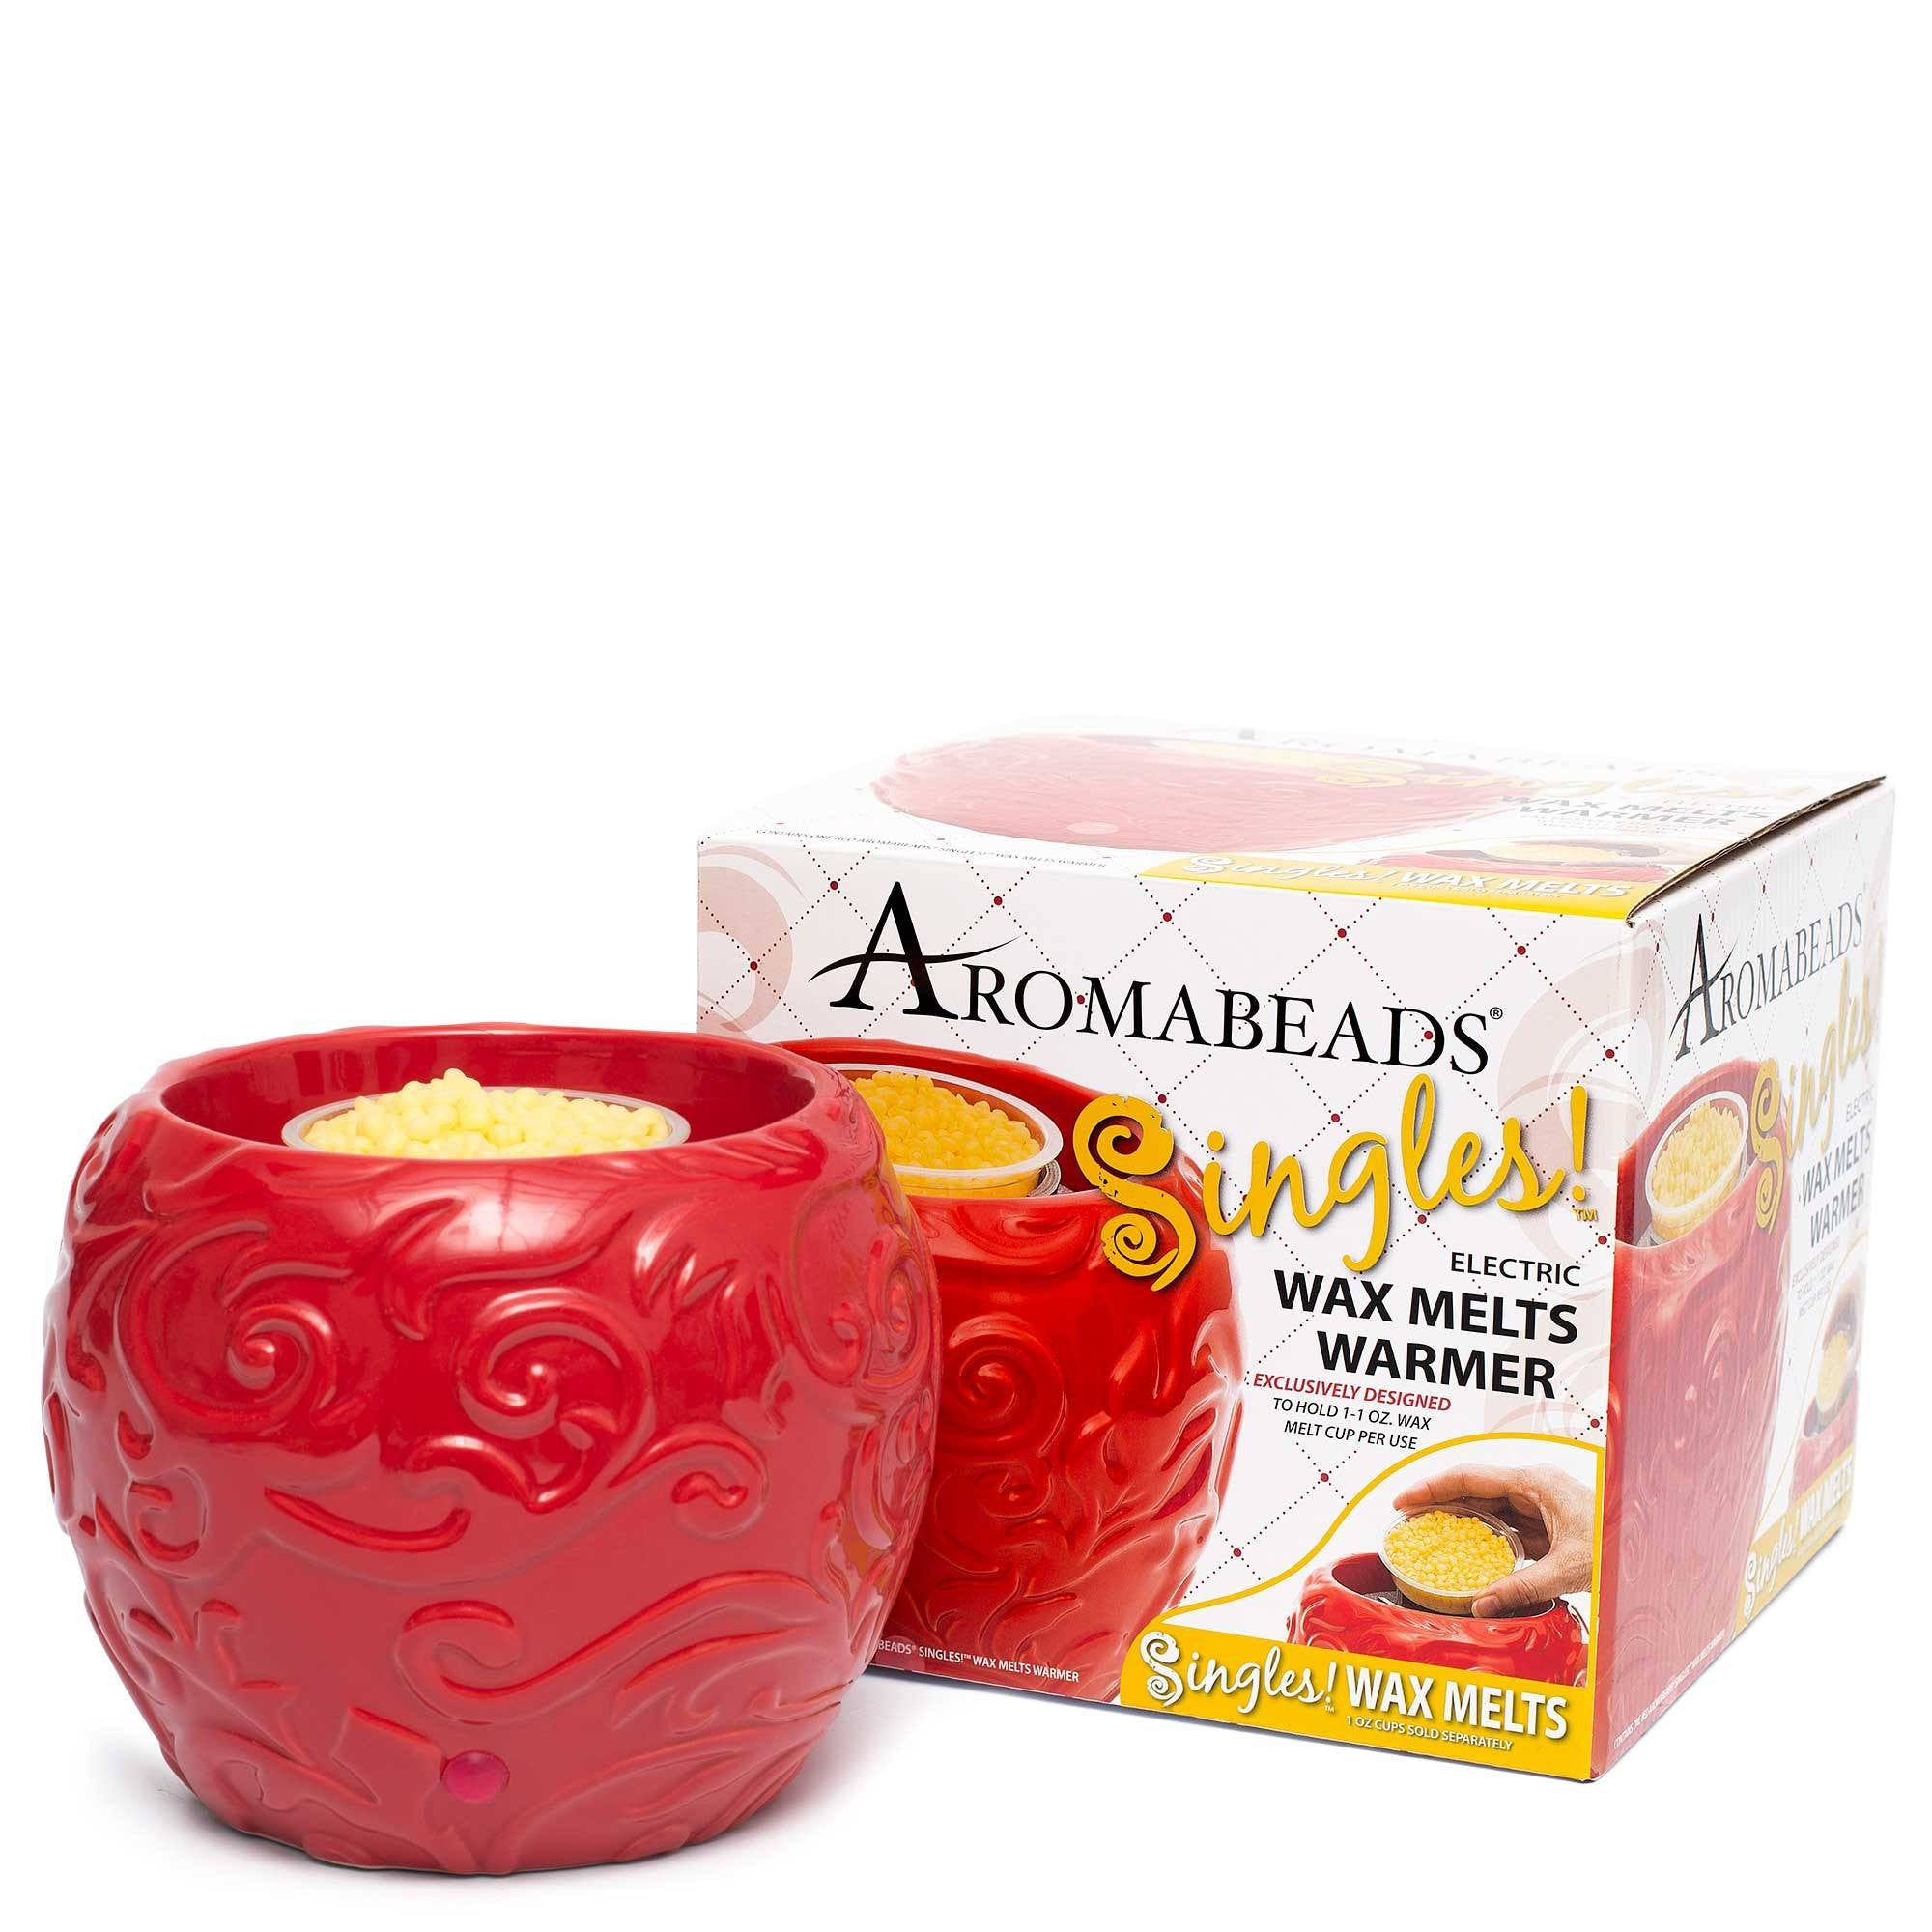 Aromabeads Singles Woodland Pine Scented Wax Melts Melts Candlemart.com $ 1.49